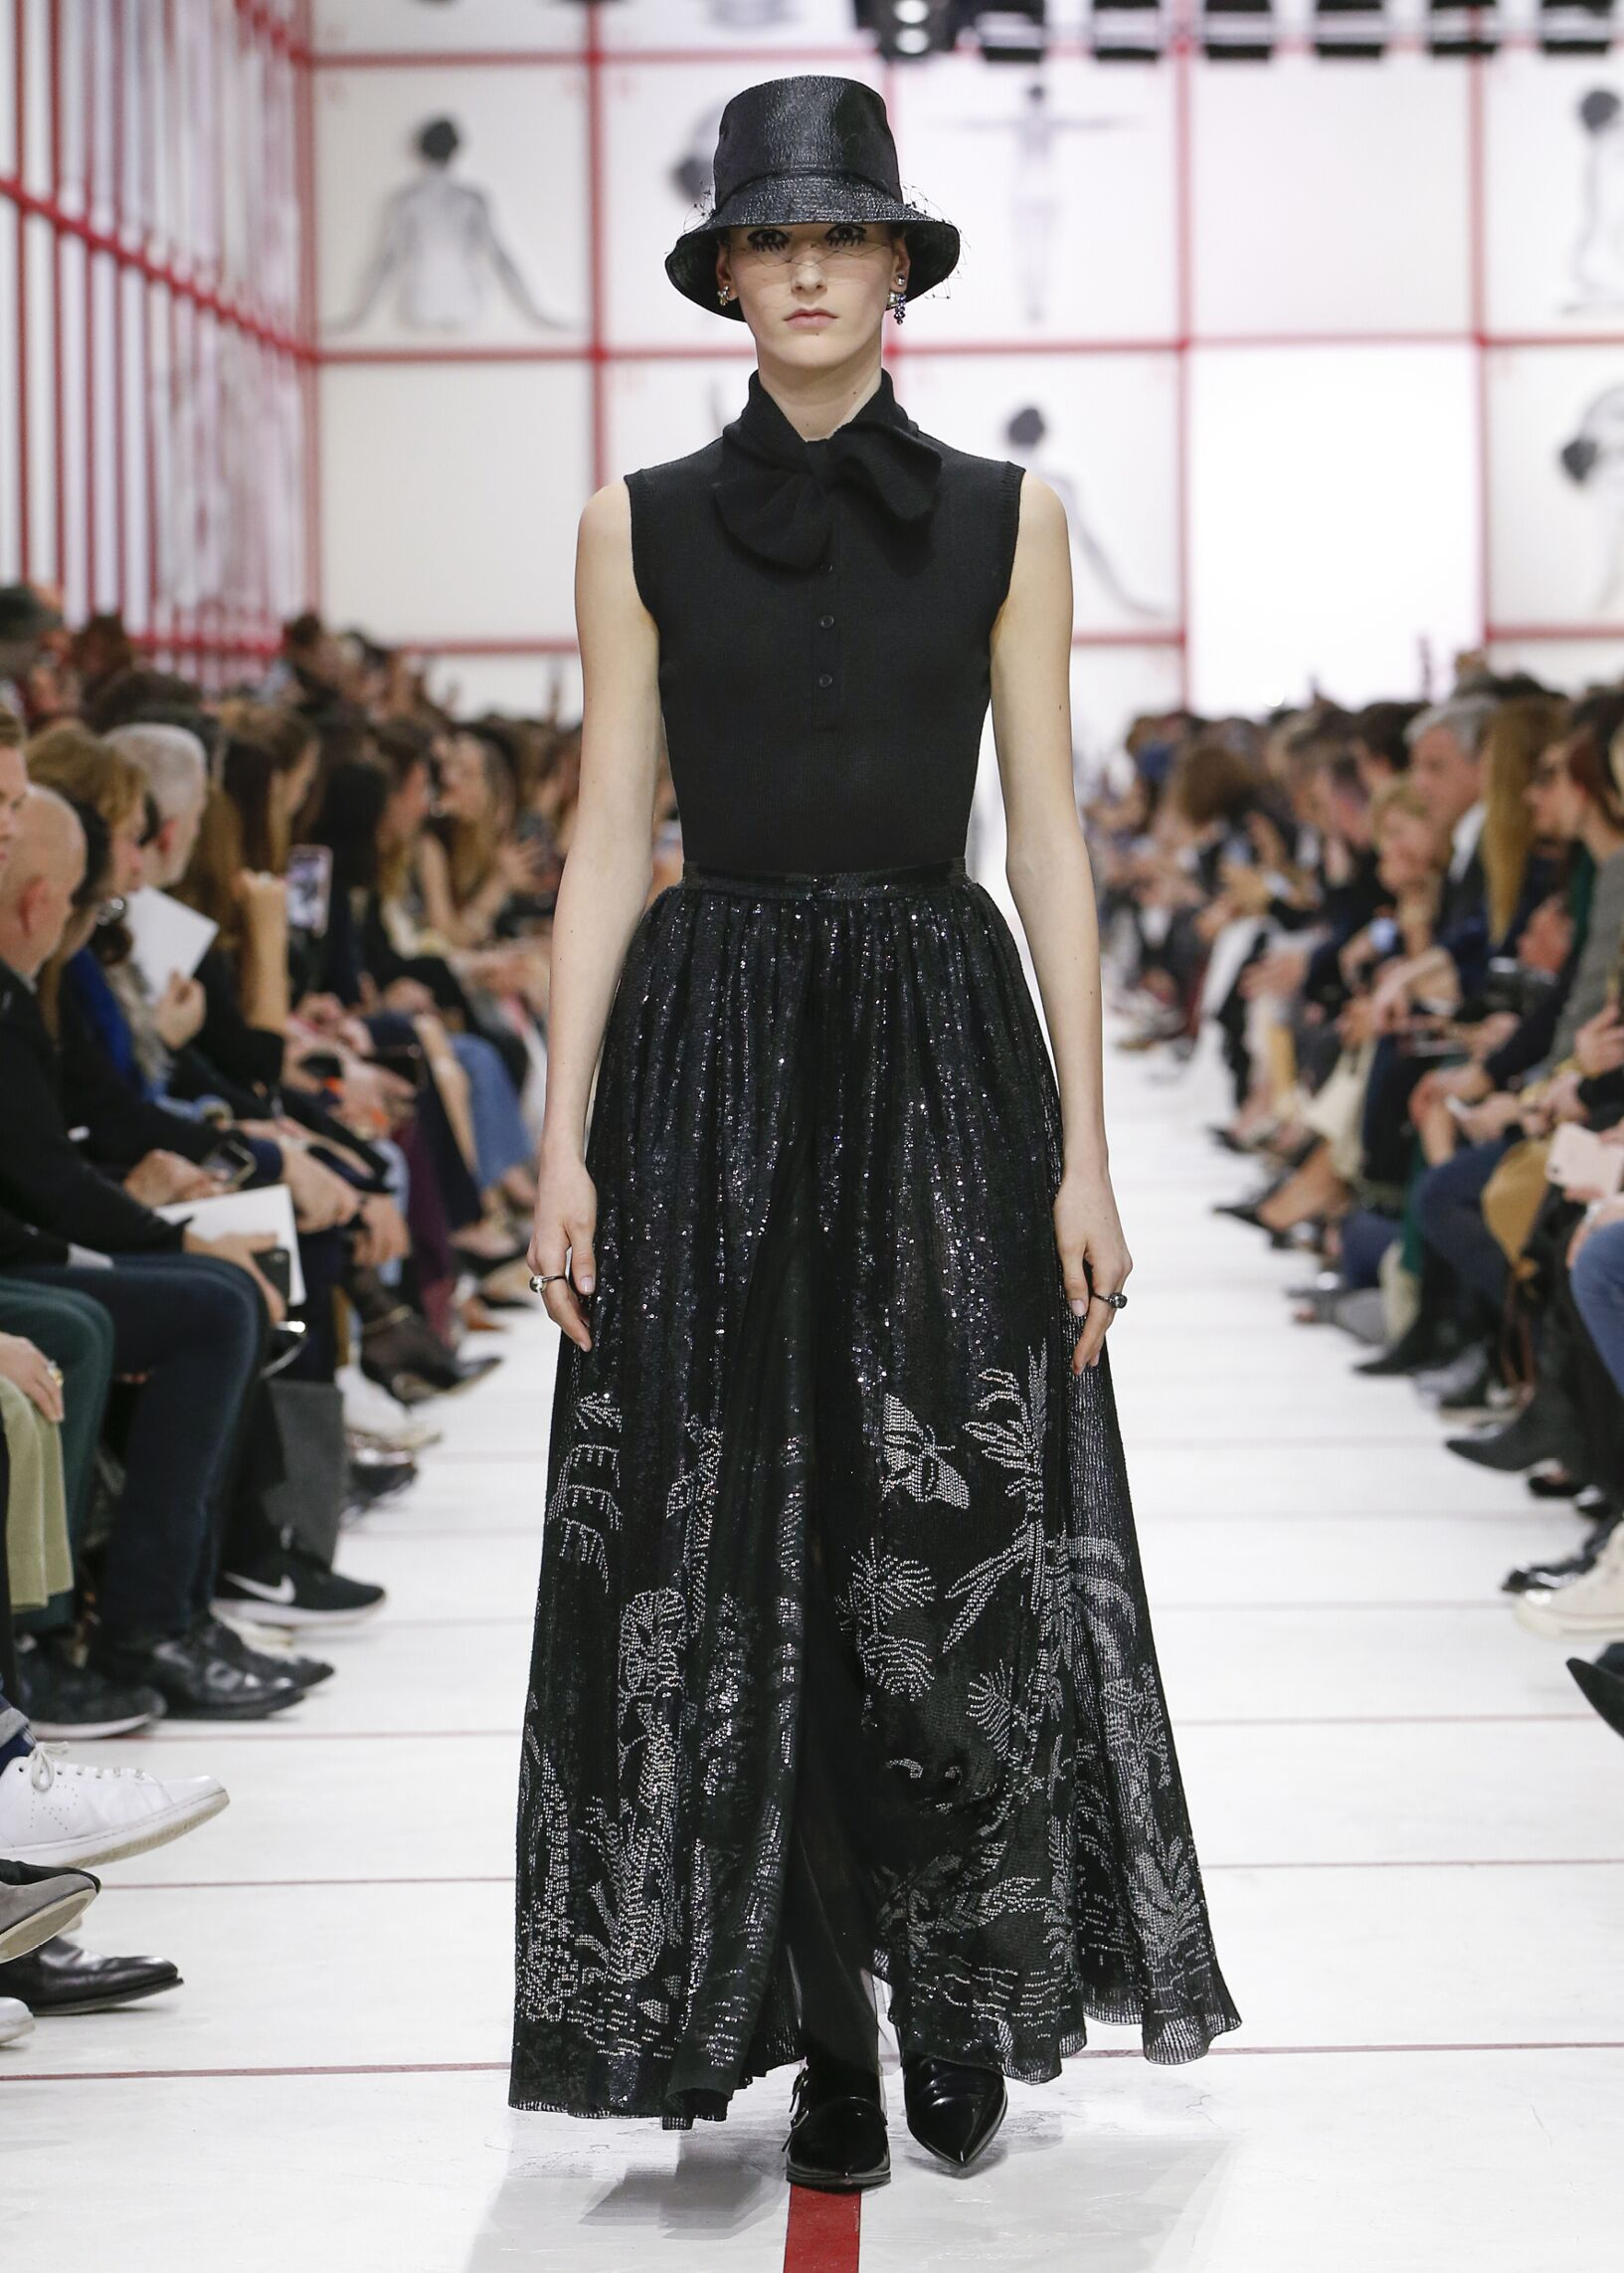 Dior Womenswear Collection Trends